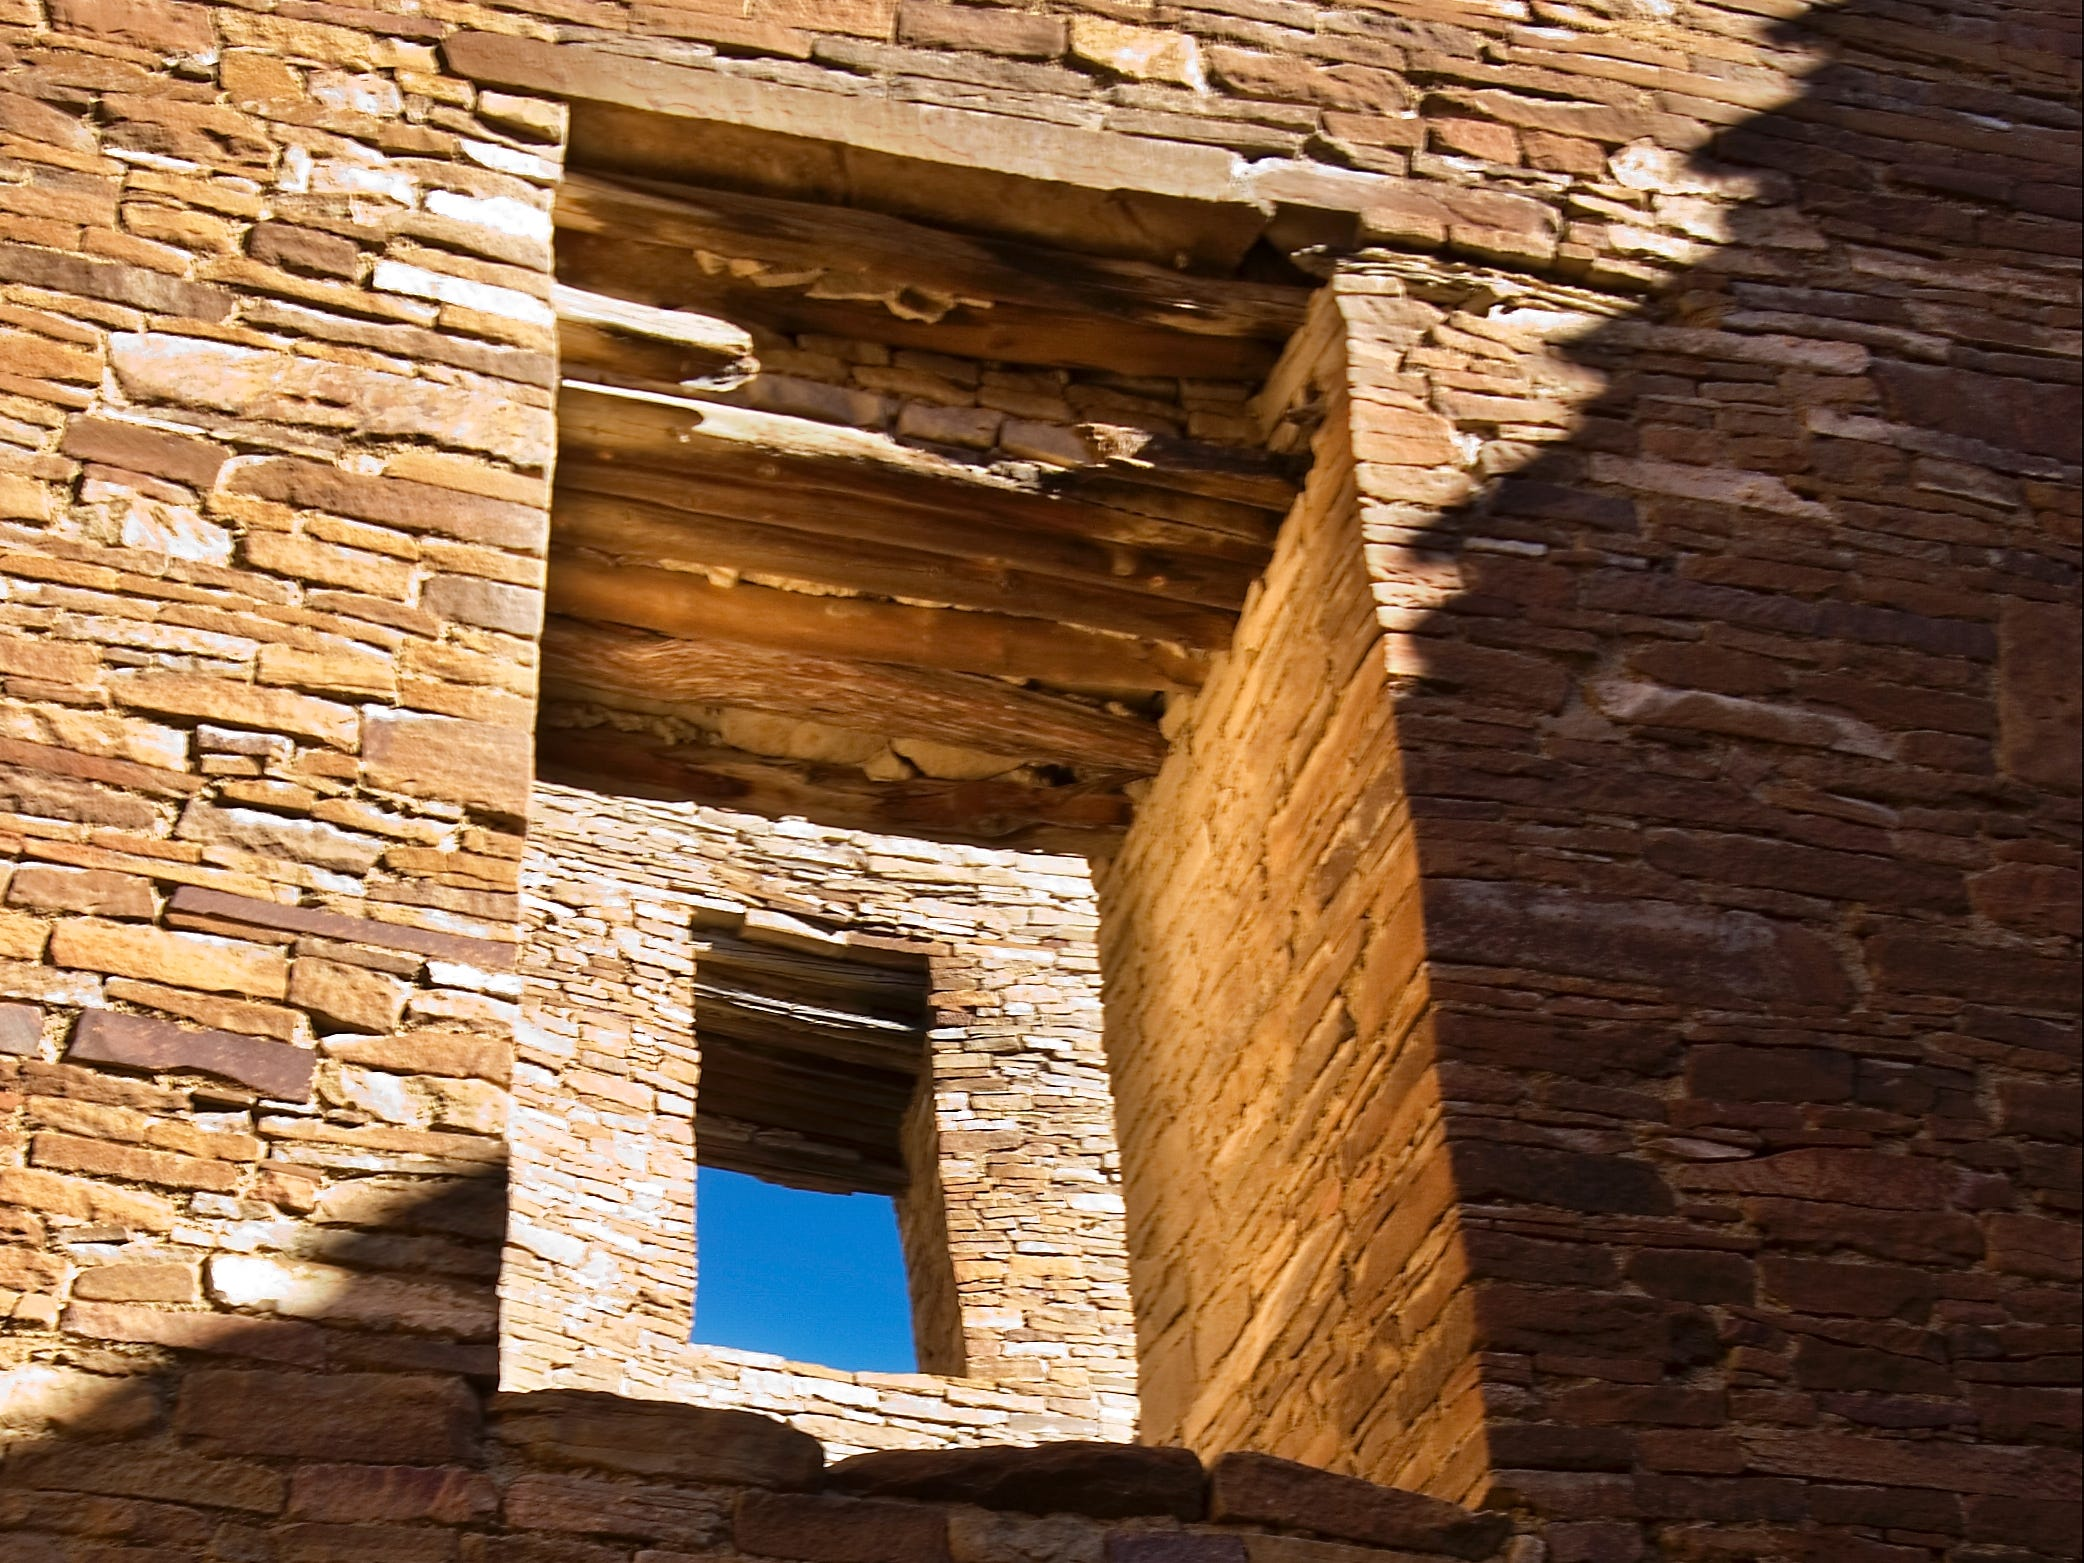 Pueblo Bonito is seen at the Chaco Culture National Historical Park in northwest New Mexico.